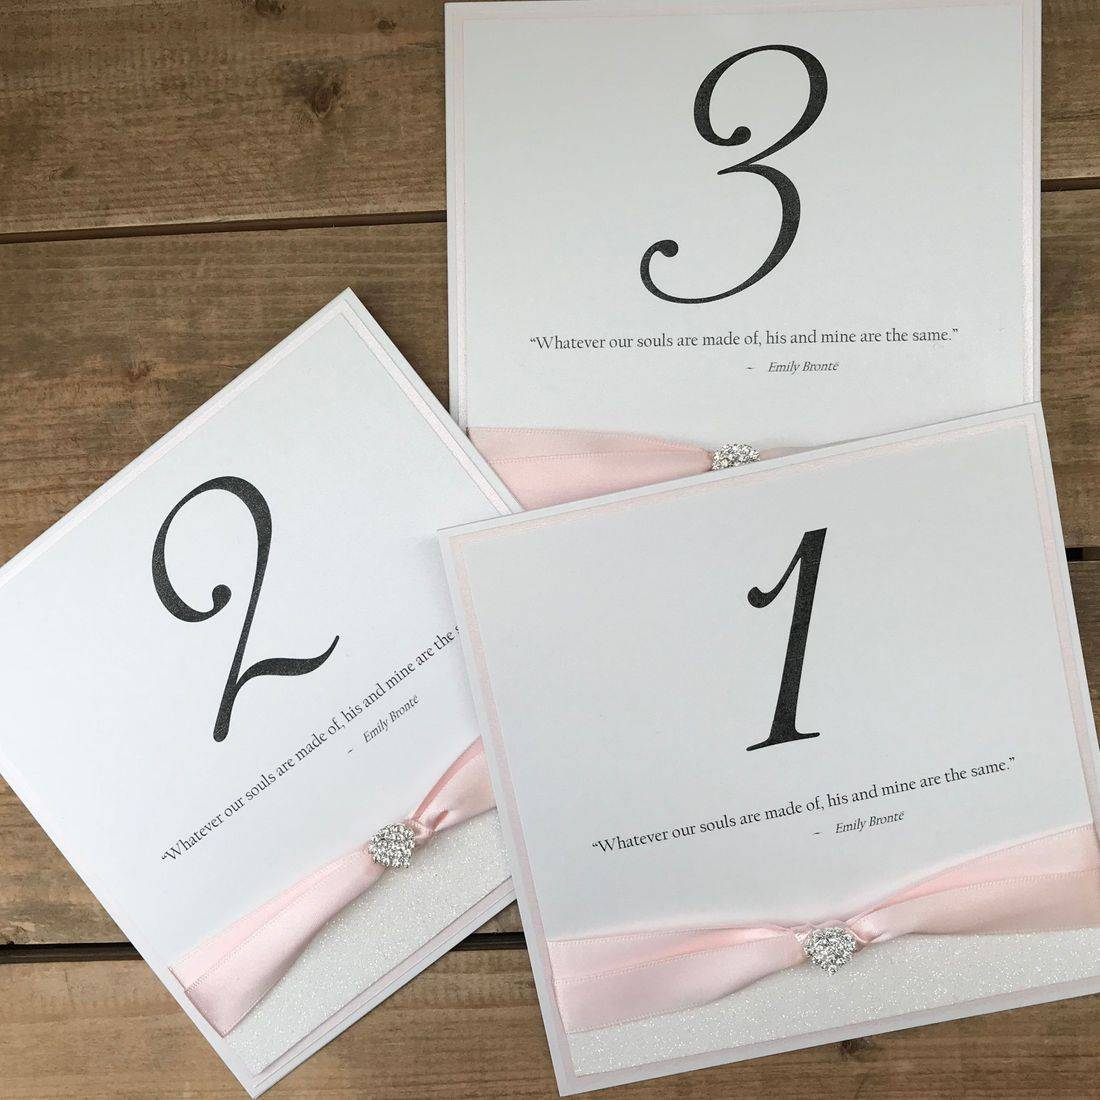 Pink and White Table Cards with Quotes